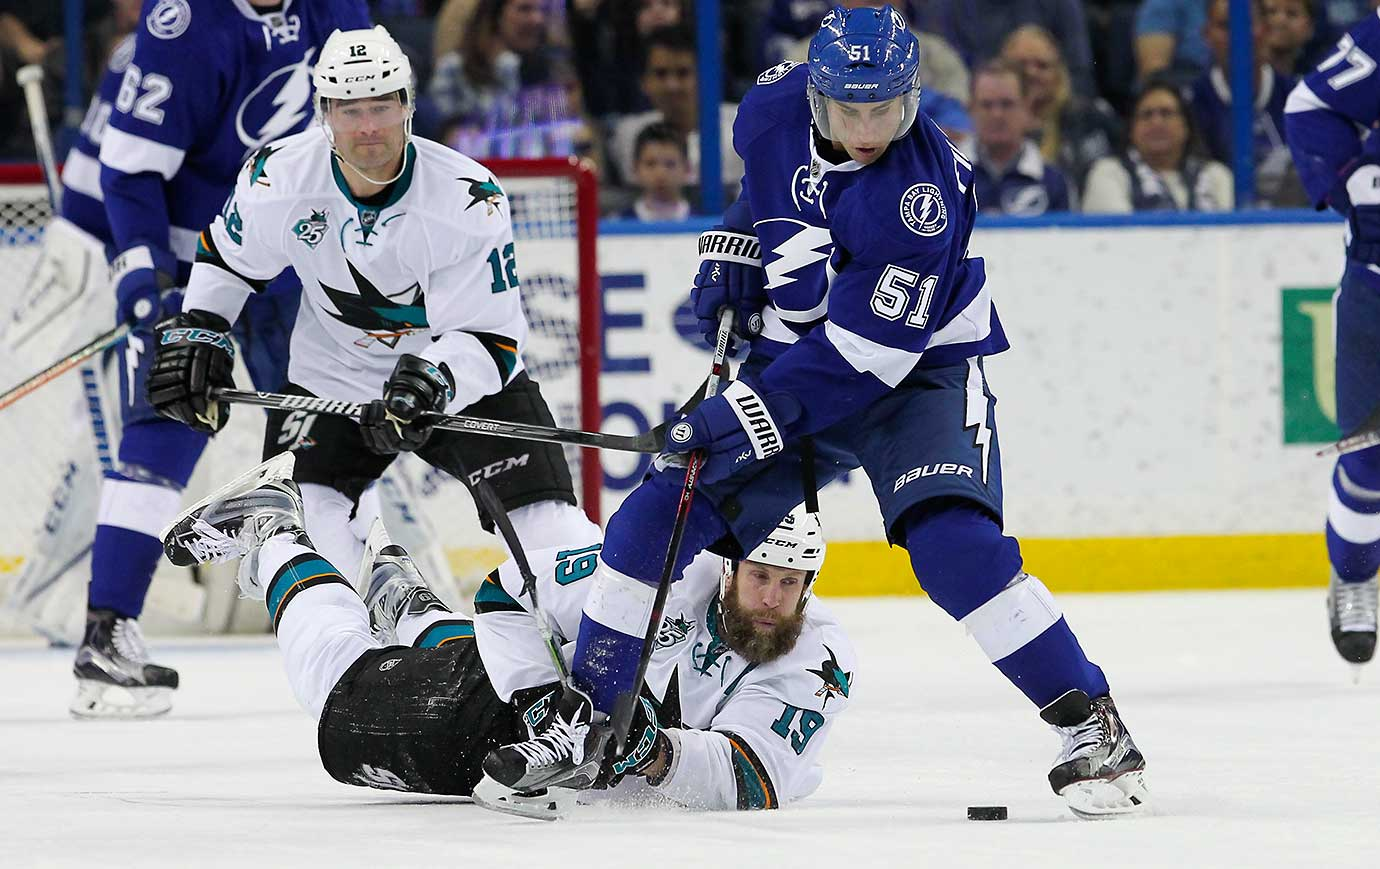 Joe Thornton of San Jose tries to knock the puck away from Valtteri Filppula (51) of Tampa Bay as he lays on the ice.